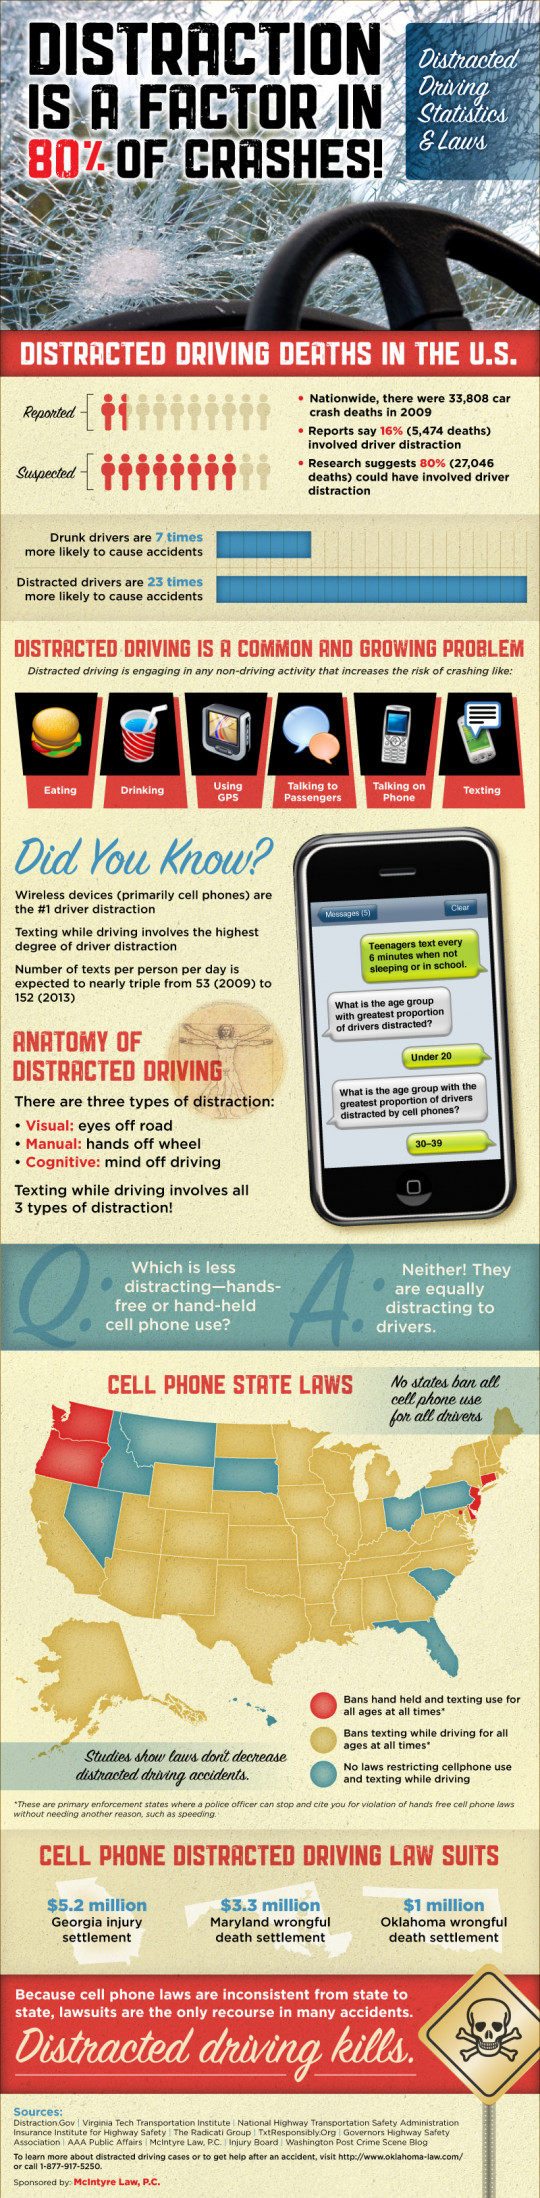 Distracted Driving Statistics and Laws